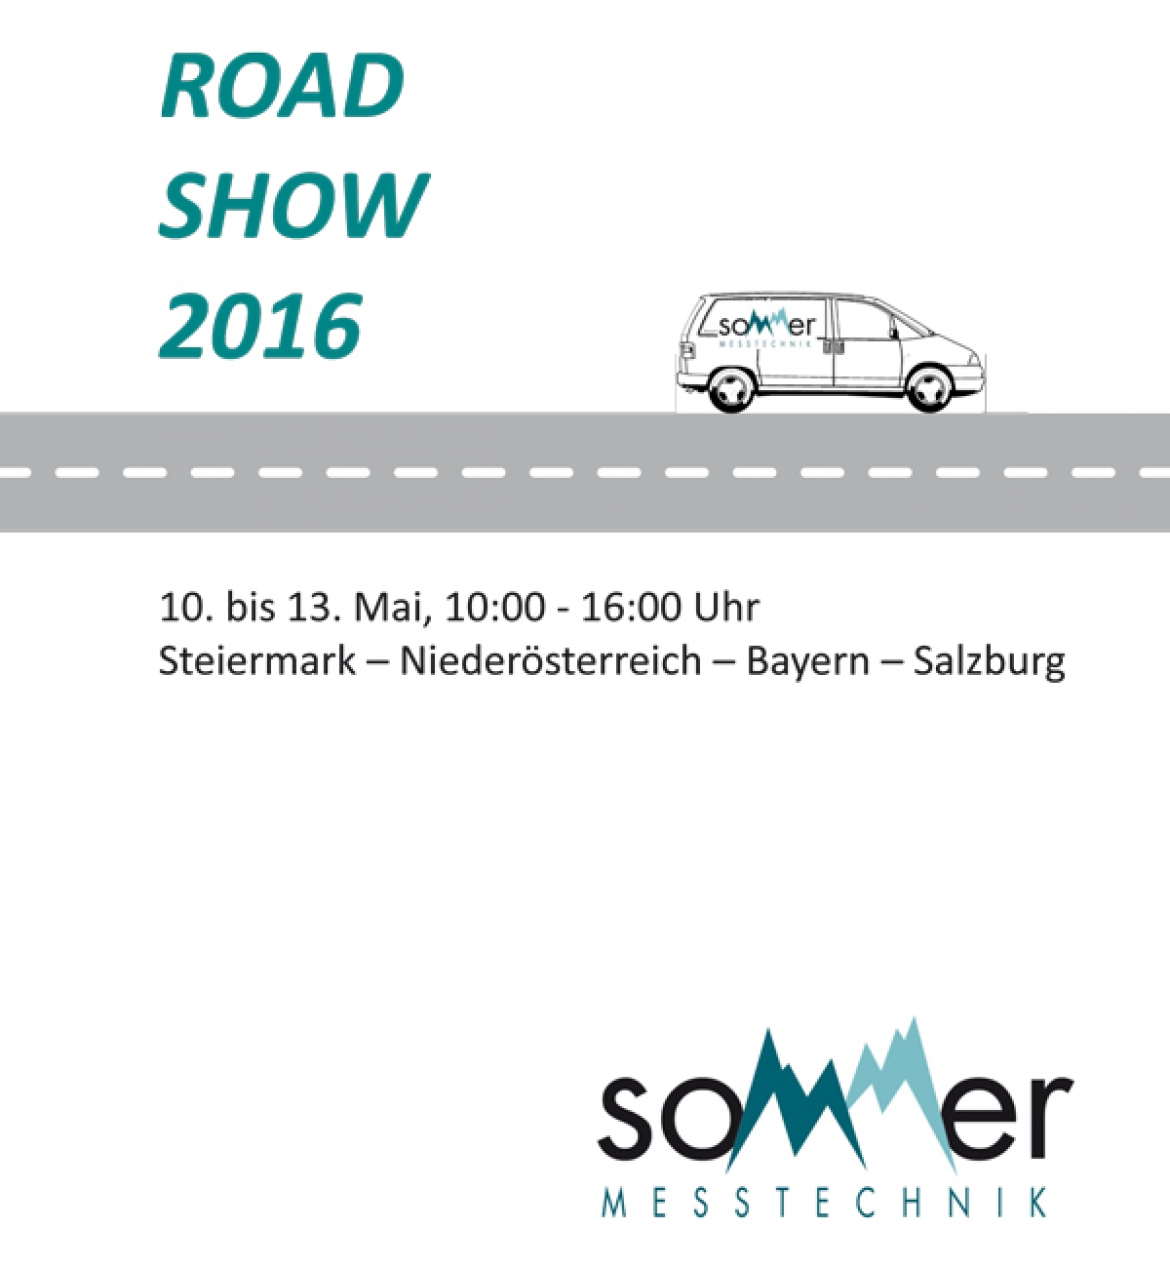 SOMMER Road Show 2016